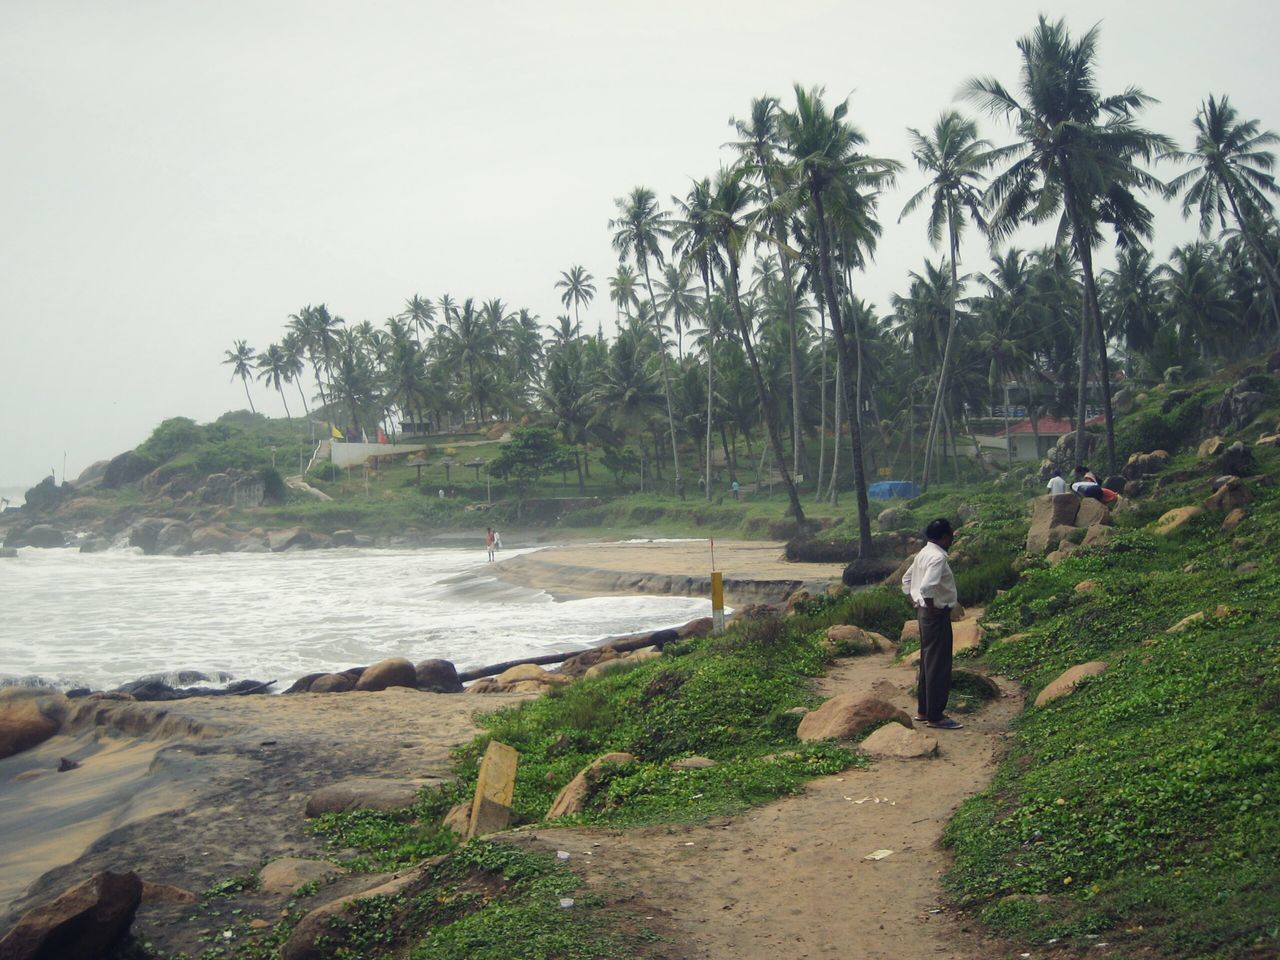 Beach Nature Tropical Coastline Day Outdoors People One Person Adult Non Recognizable Person Cloudy Day Palm Trees Lush Green Rocky Coast in Tiruvanthapuram Trivandrm Kerala India